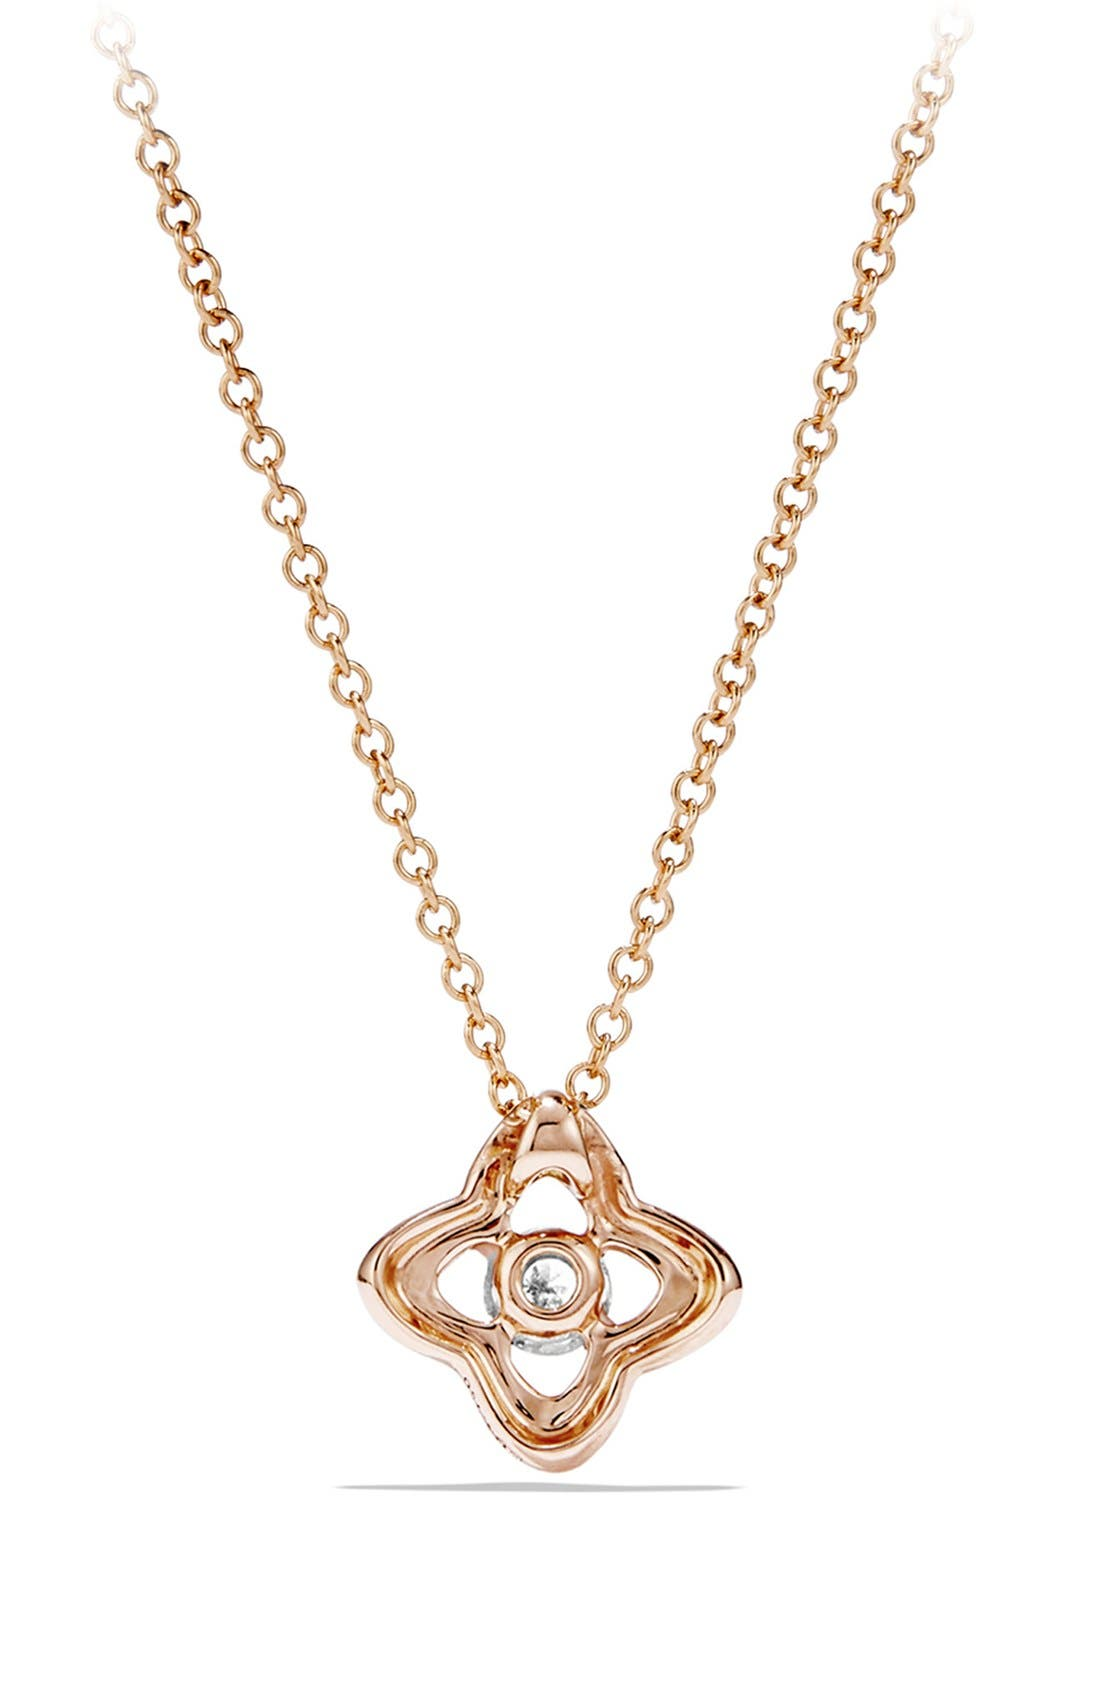 'Venetian Quatrefoil' Necklace with Diamonds in Gold,                             Alternate thumbnail 3, color,                             ROSE GOLD